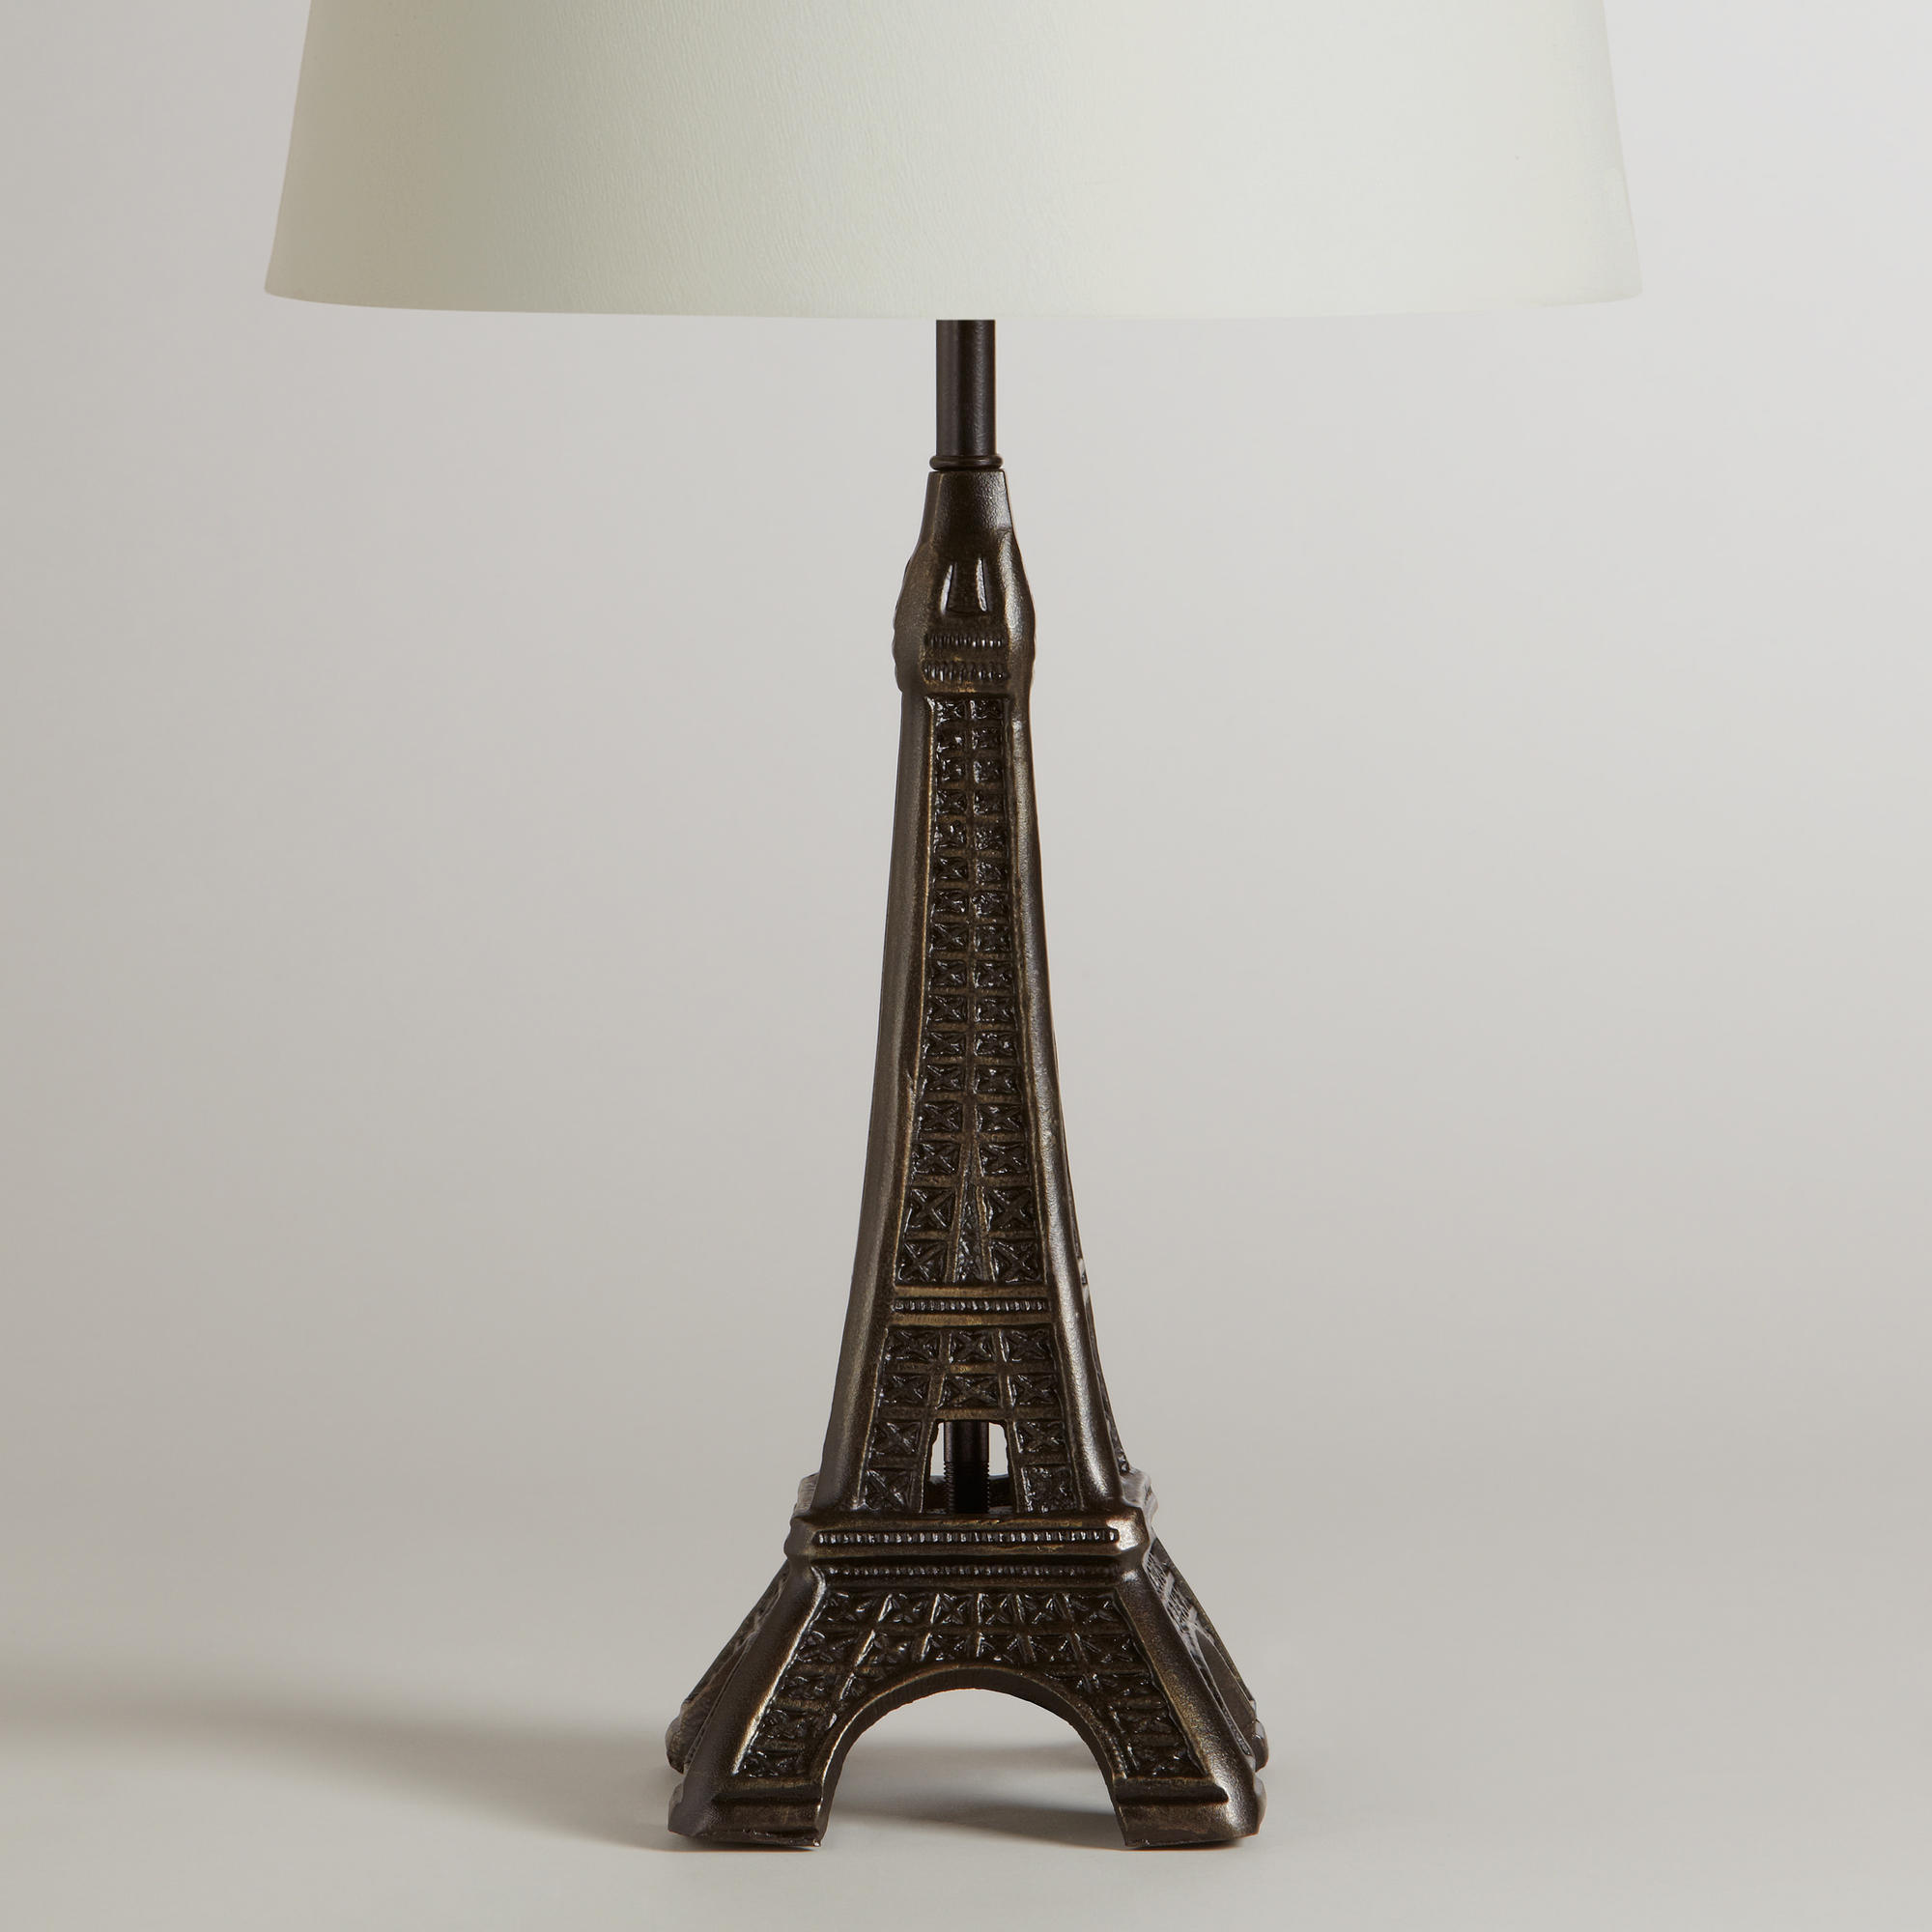 eiffel tower accent lamp base world from cost plus world market. Black Bedroom Furniture Sets. Home Design Ideas